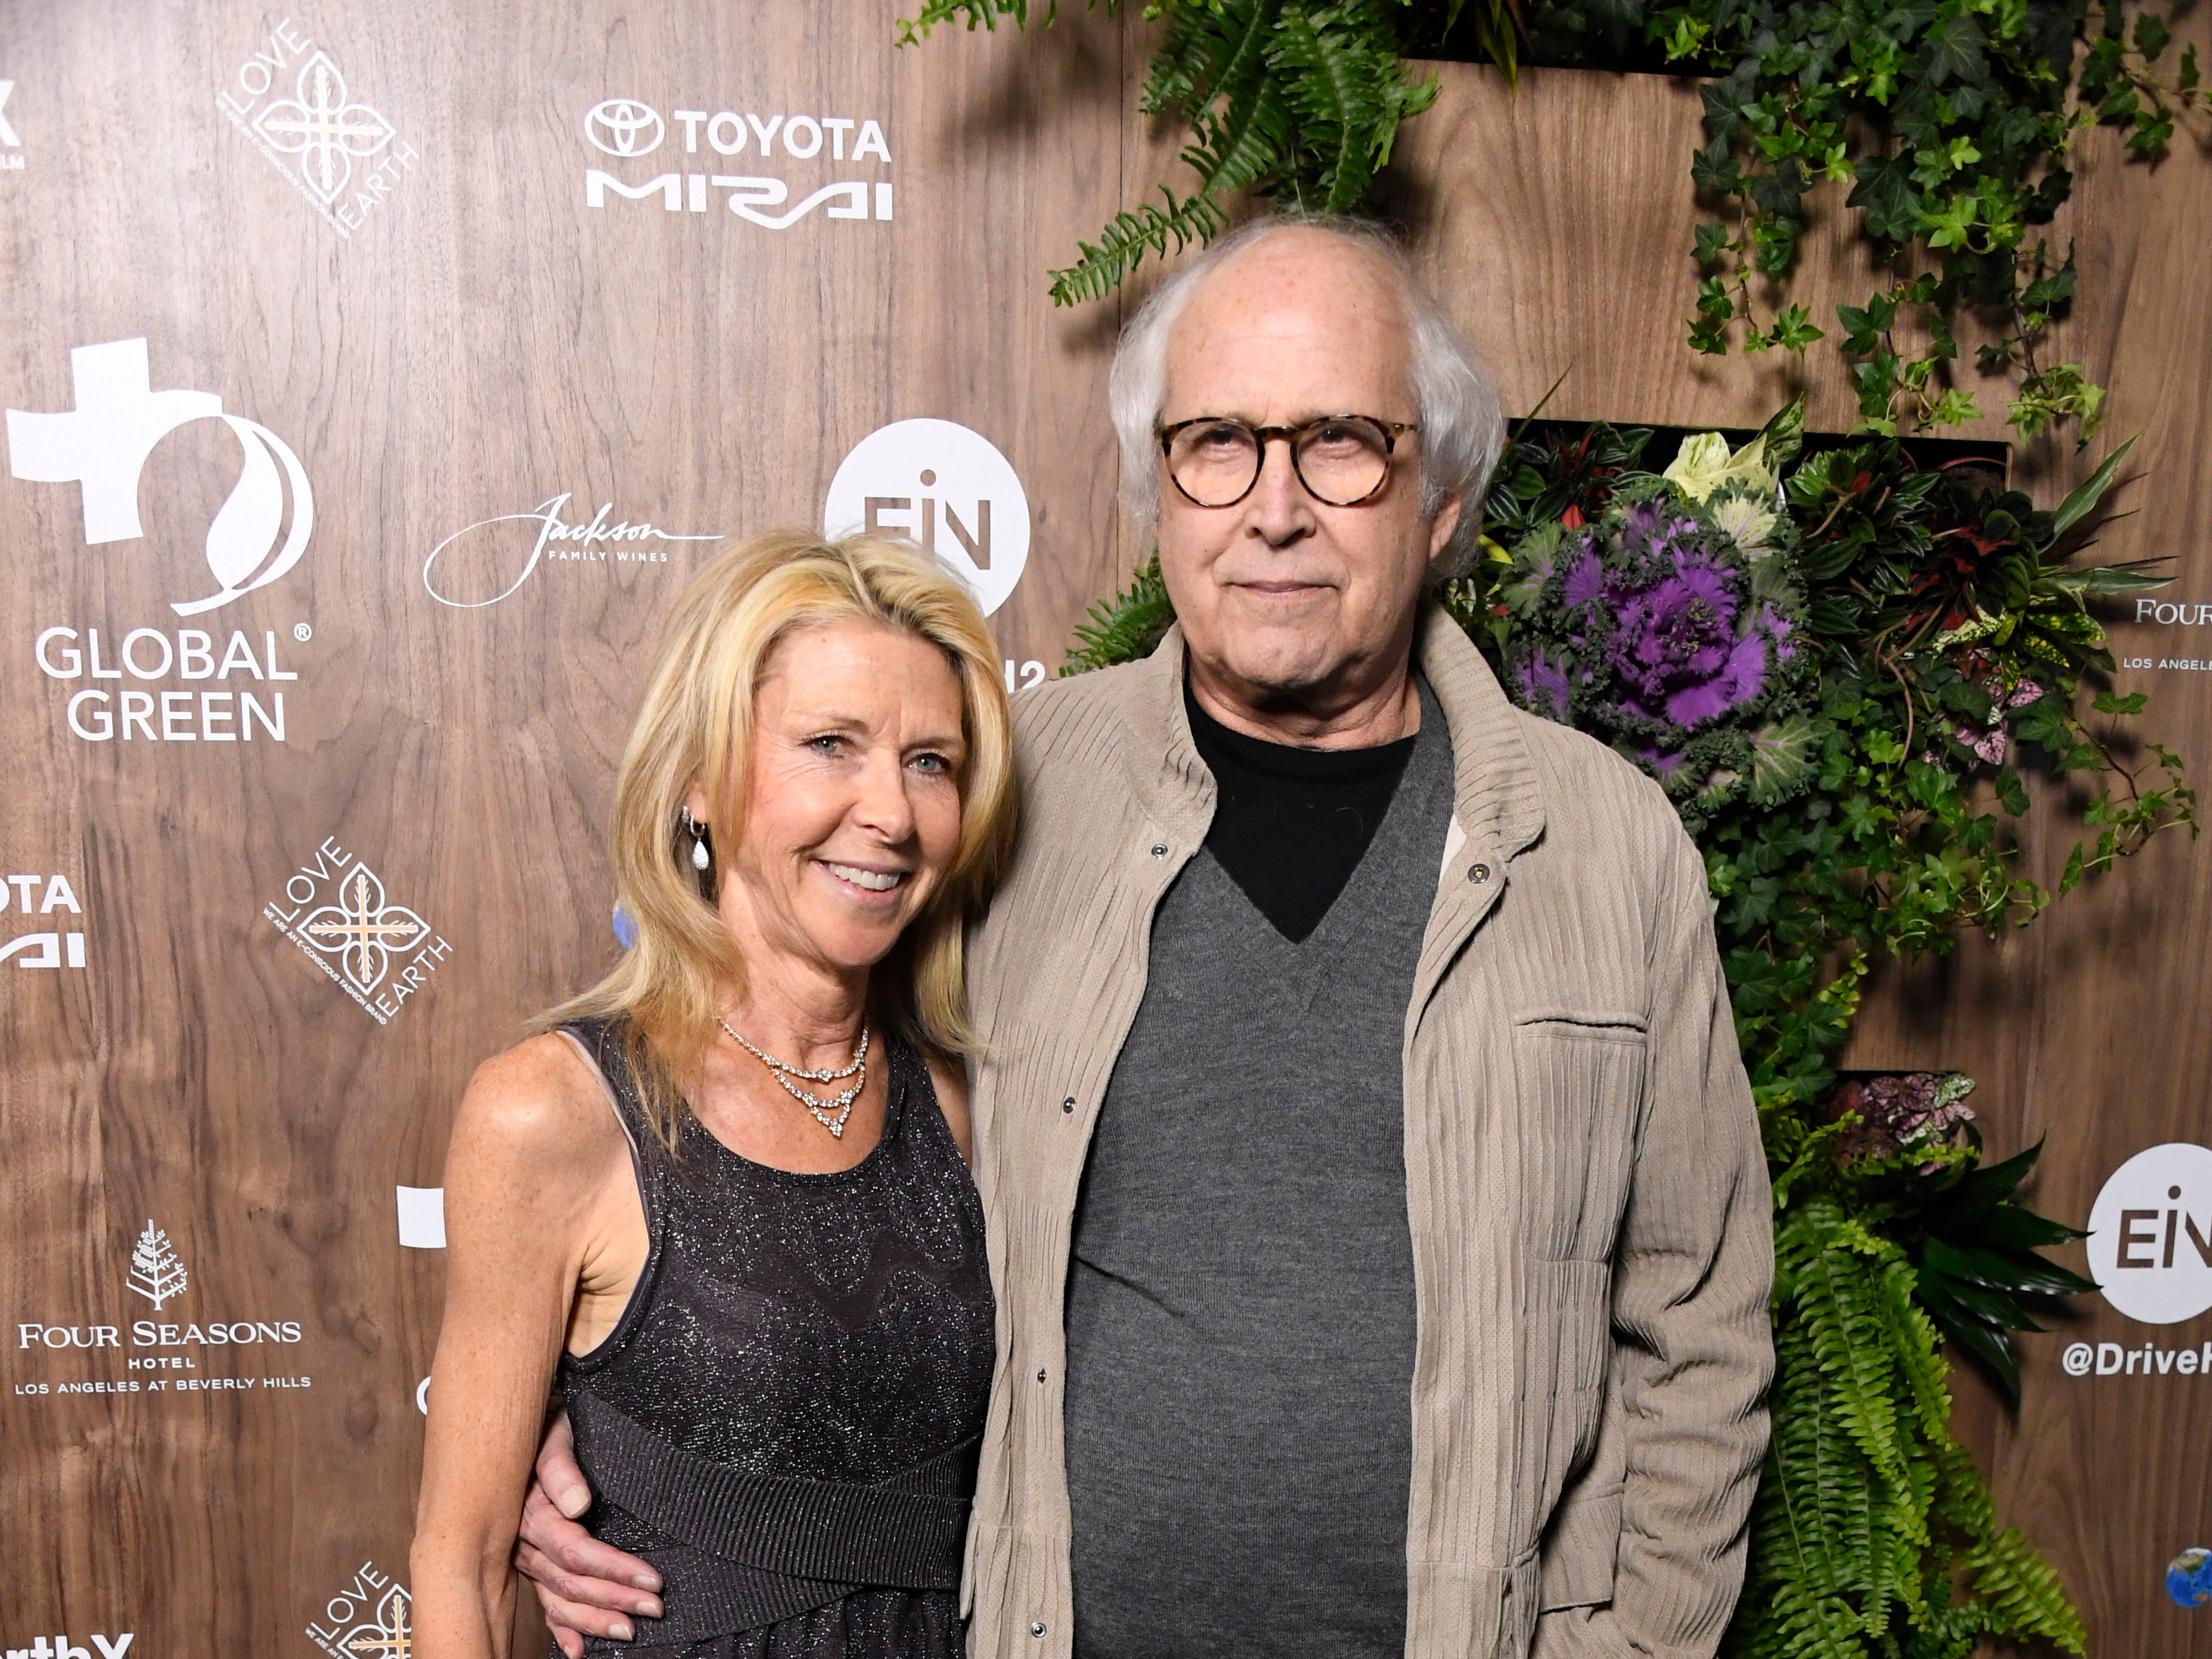 LOS ANGELES, CALIFORNIA - FEBRUARY 20: Jayni Chase and Chevy Chase attend the Global Green 2019 Pre-Oscar Gala  at Four Seasons Hotel Los Angeles at Beverly Hills on February 20, 2019 in Los Angeles, California. (Photo by Frazer Harrison/Getty Images) ORG XMIT: 775298110 ORIG FILE ID: 1131084777